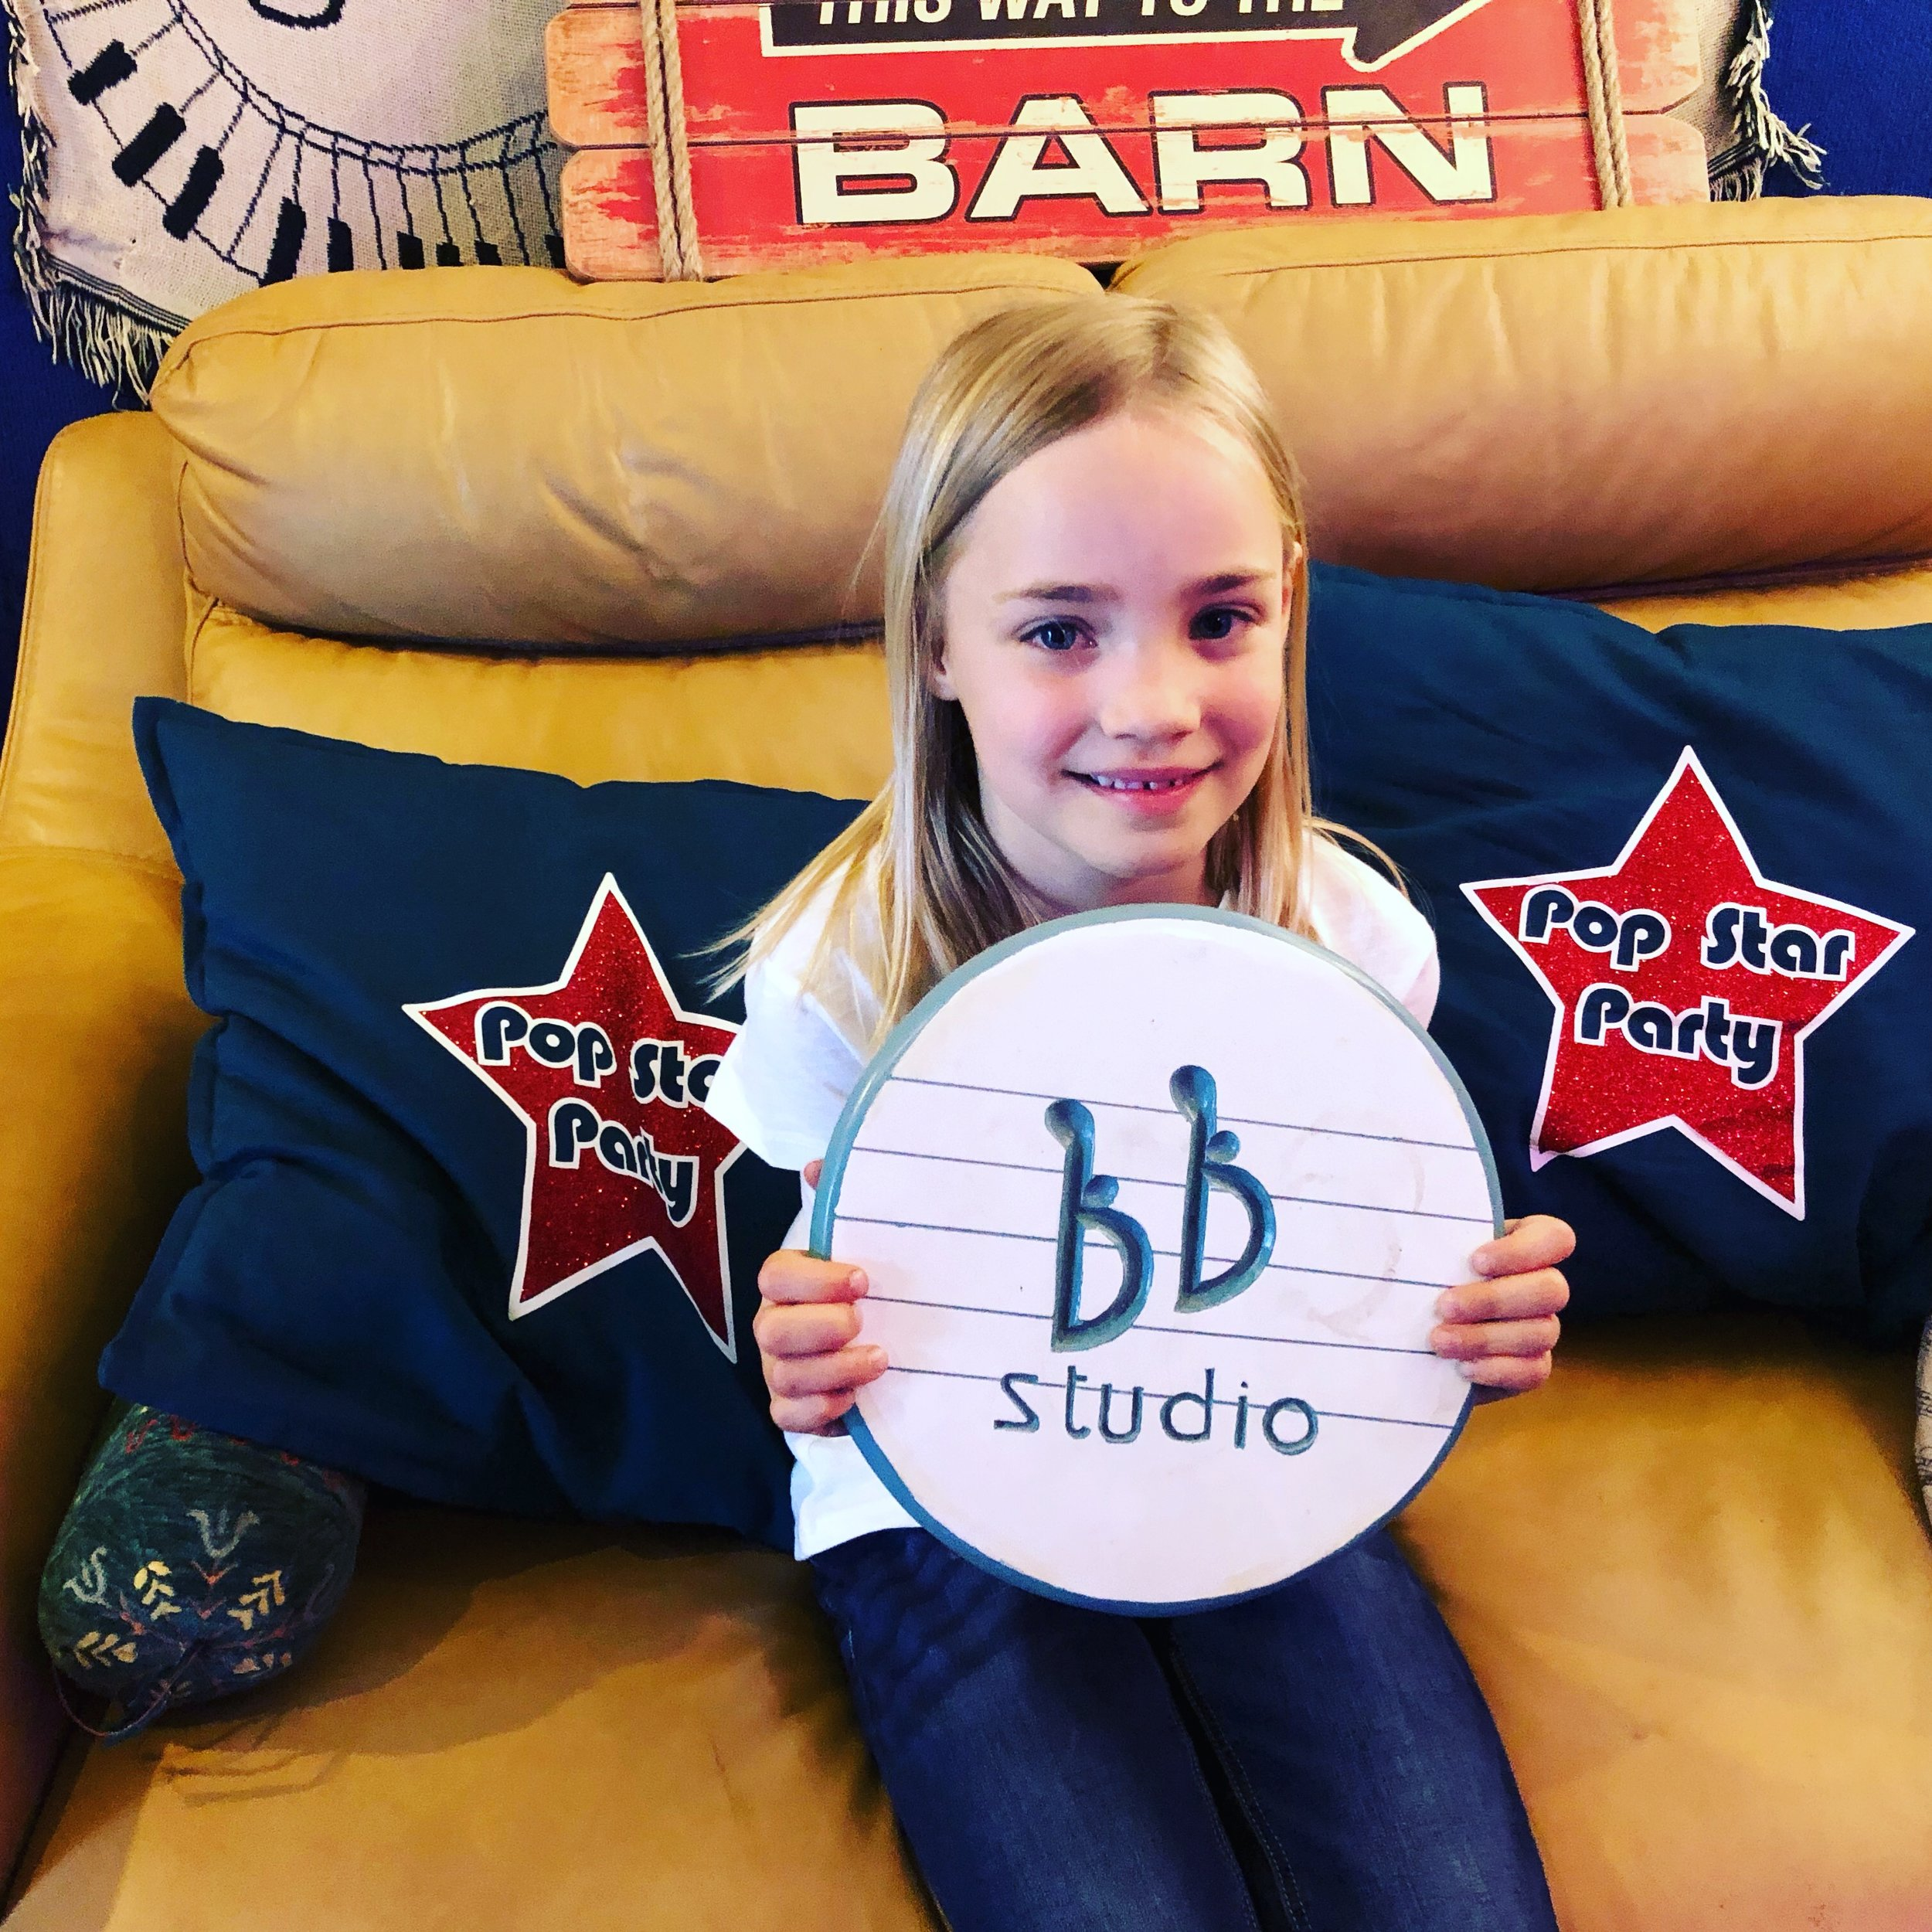 Bebe at BB Studio for her Pop Star Party.jpeg